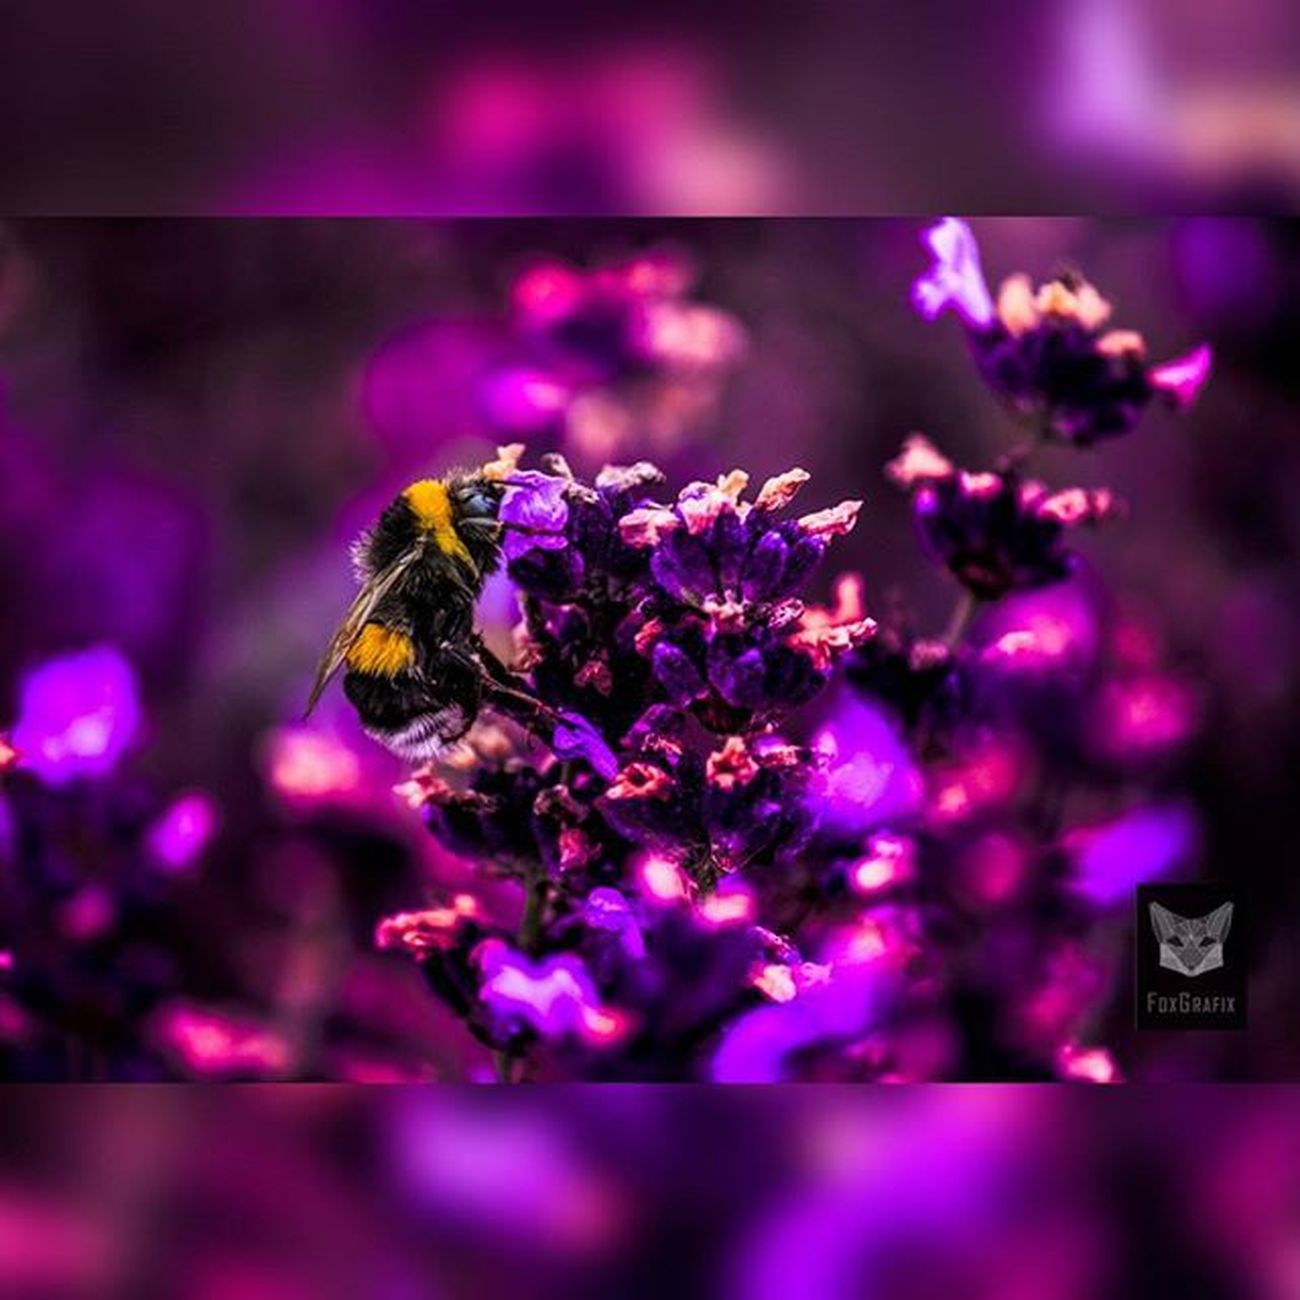 Bumblebee in the lavender field Fotografie Salzgitter Naturfoto Naturephotography Macro Bumblebee Hummel Lavendel Lavender Lavenderfield Lavendelfeld Photographyislife Photgraphy